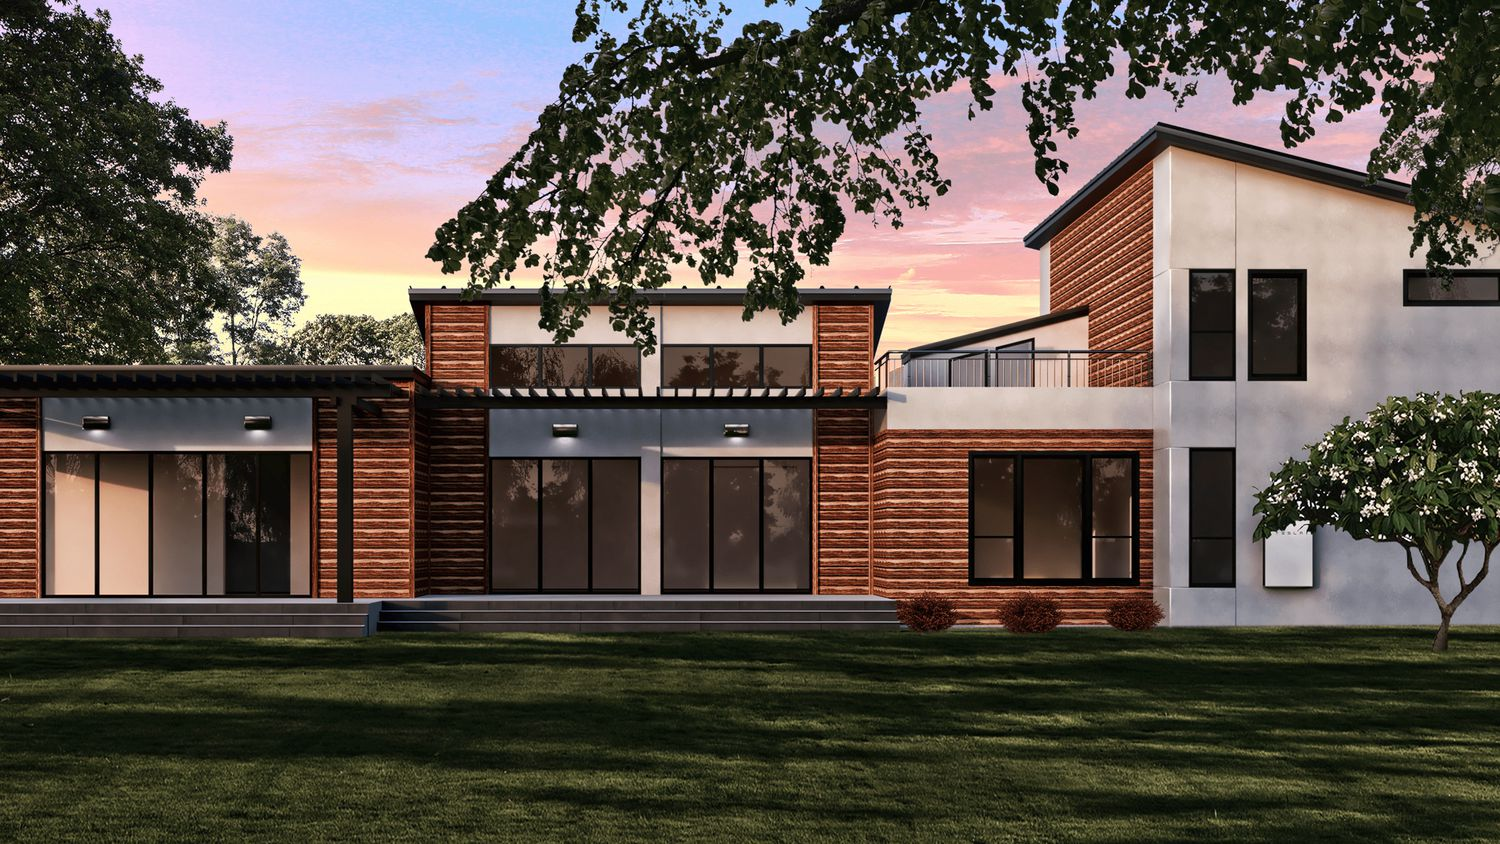 S2A Modular plans to manufacture a variety of modular homes and buildings.